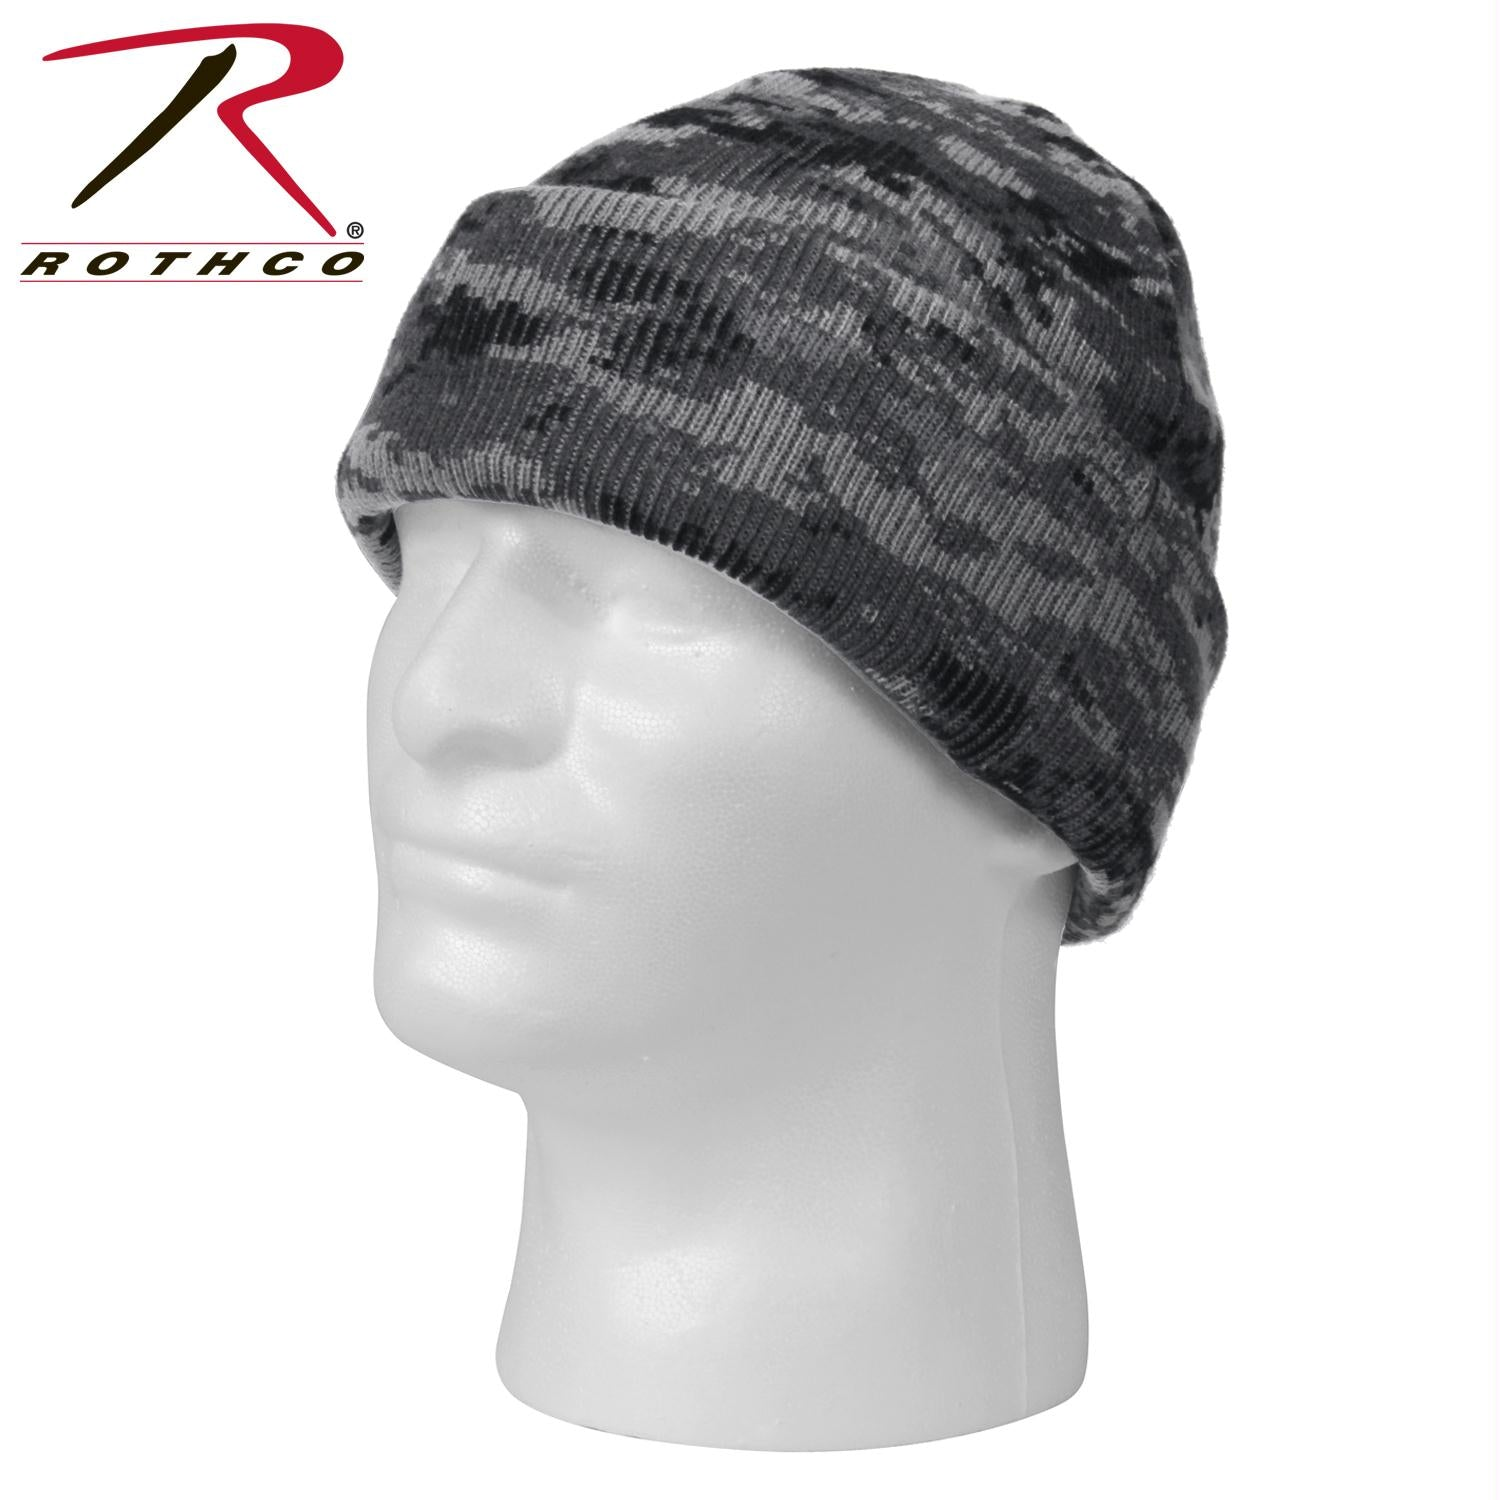 Rothco Deluxe Camo Watch Cap - Subdued Urban Digital Camo